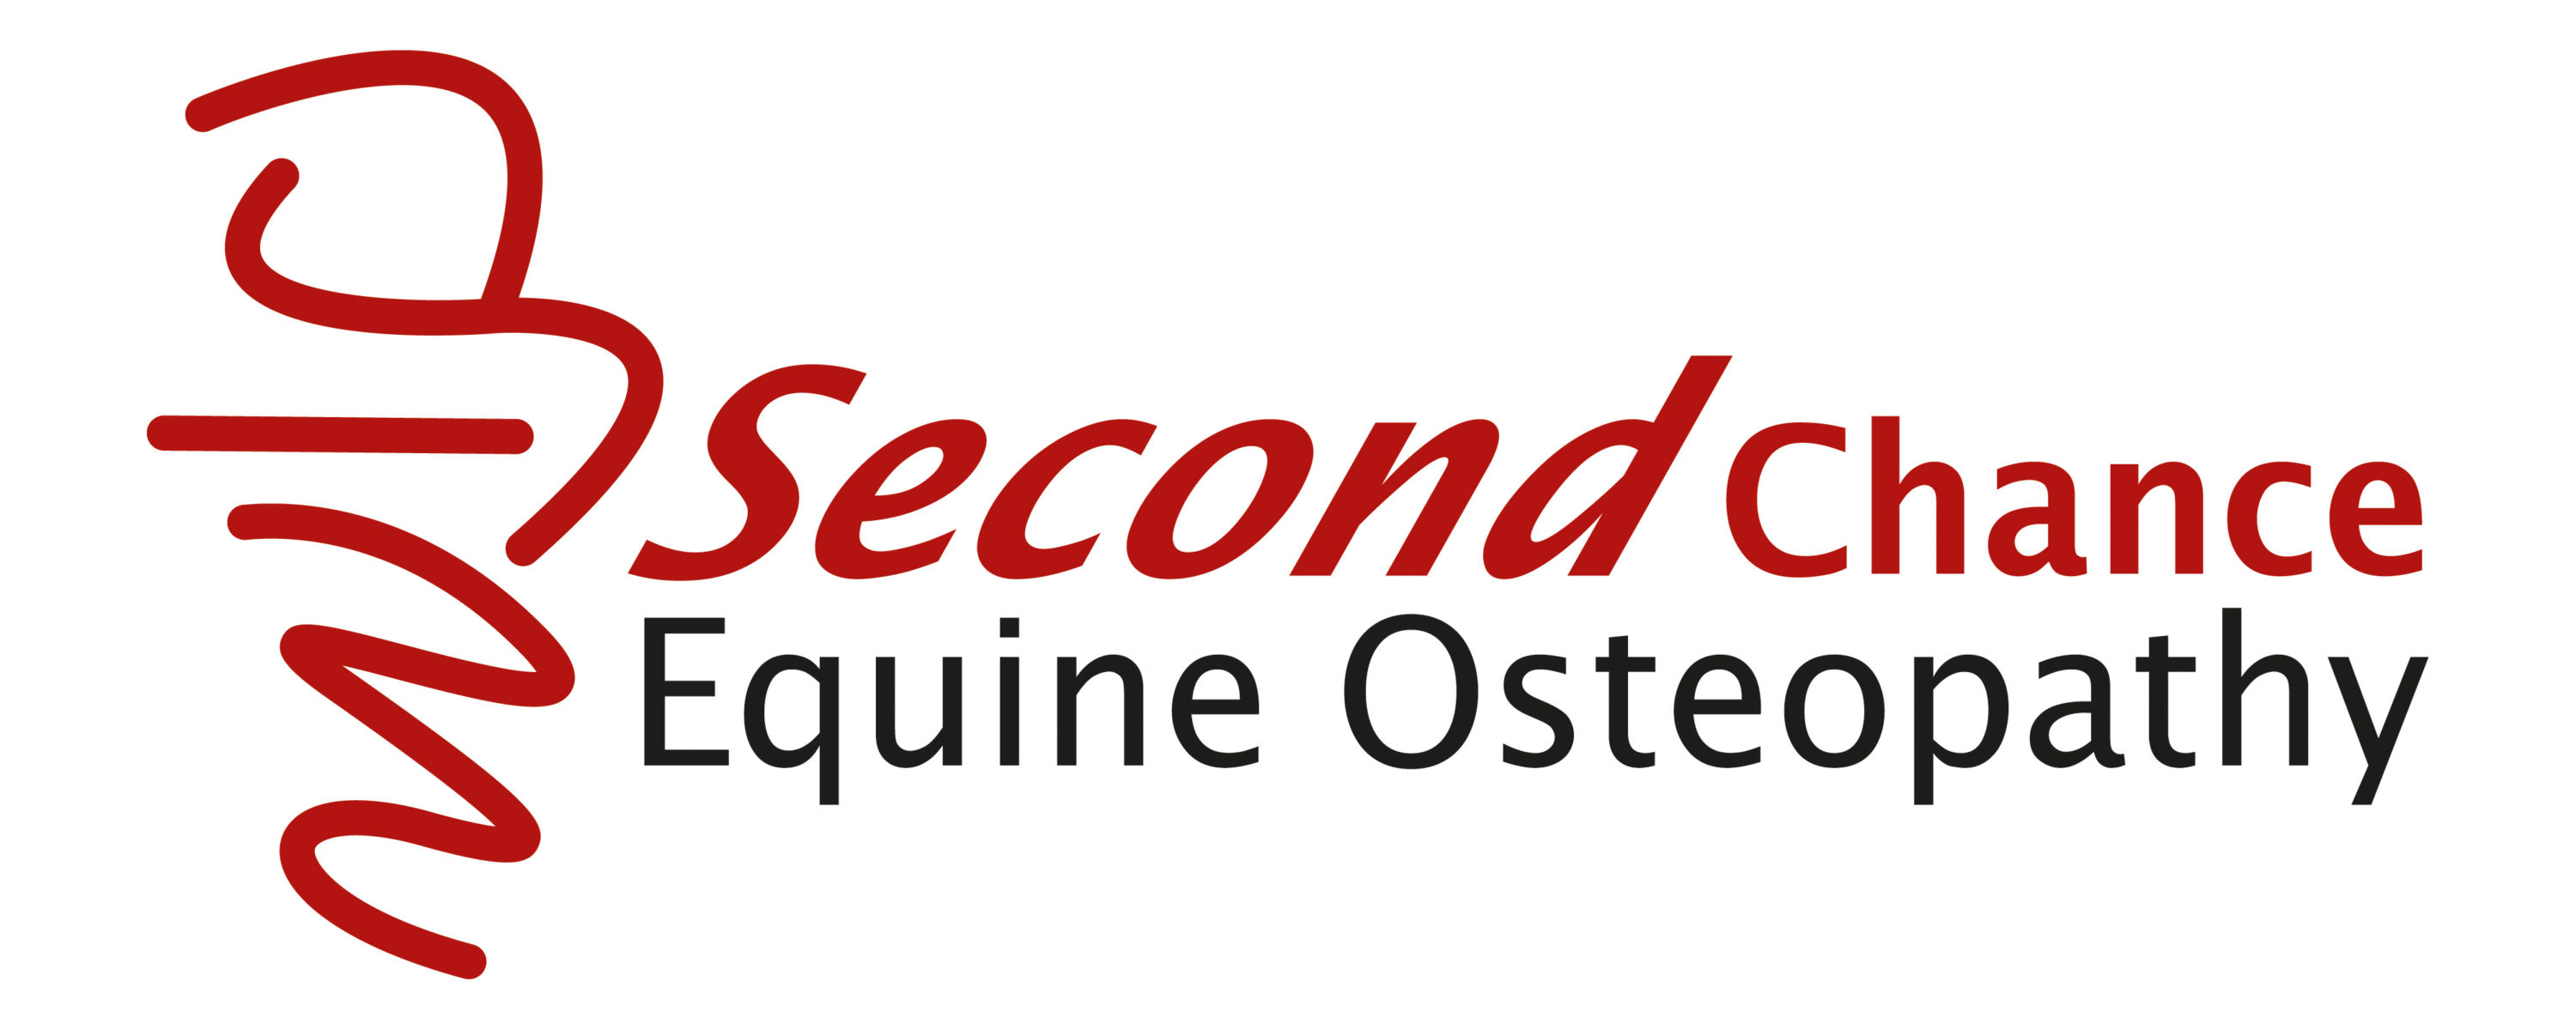 Second Chance Equine Osteopathy